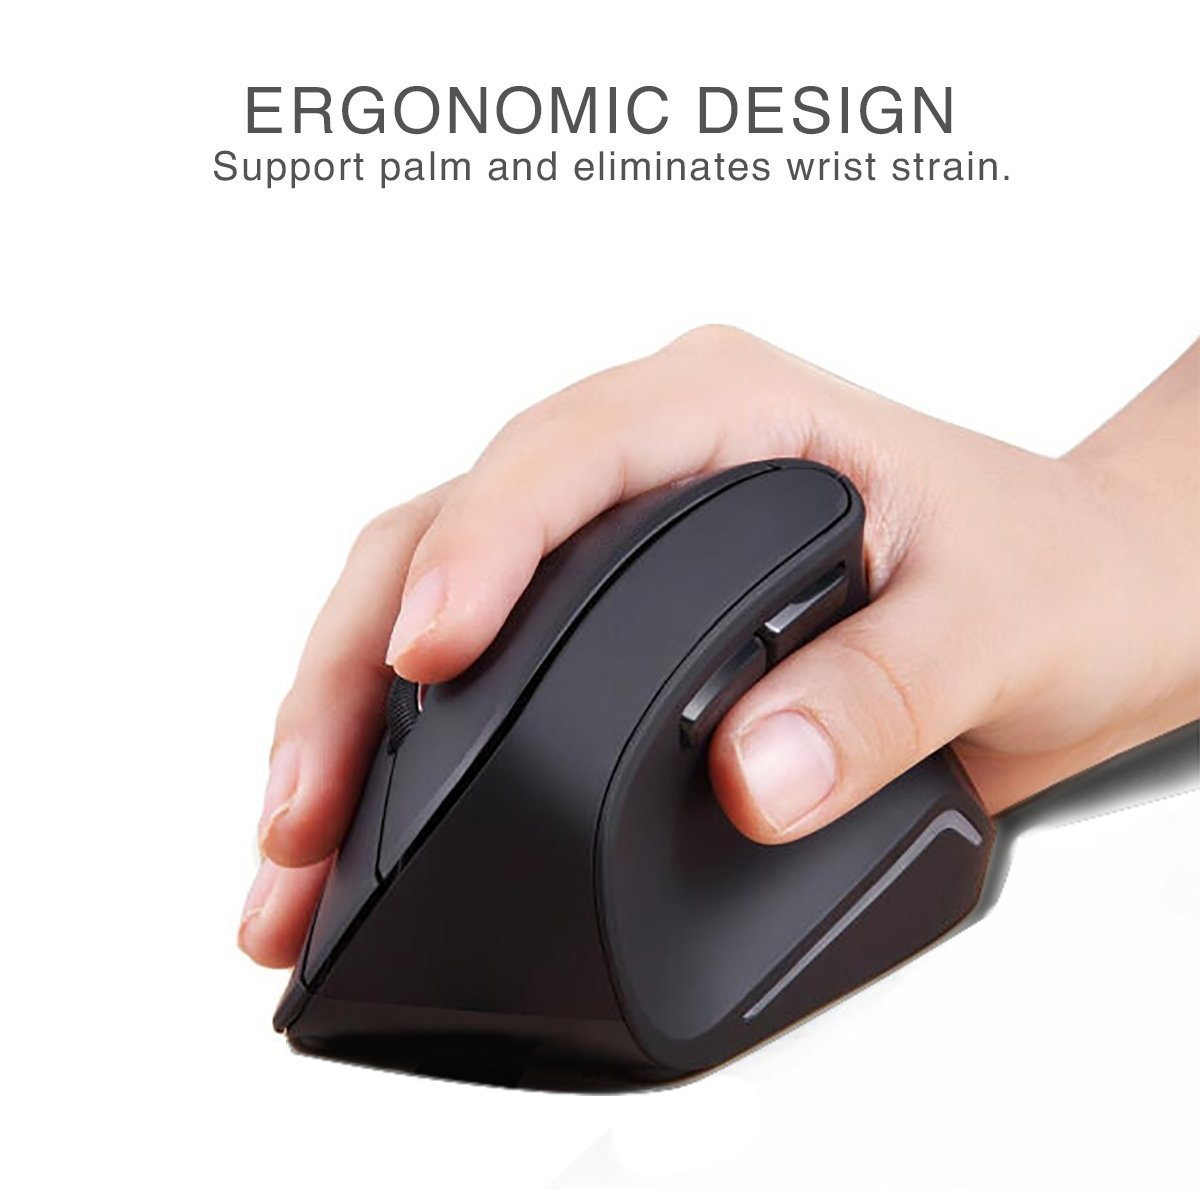 d94f3a4ee4f Amazon.com: Velocifire 2.4G Wireless Vertical Ergonomic Optical Mouse,Adjustable  DPI 1600 / 800 / 1200 with 6 Buttons Black EVM02 (Certified Refurbished):  ...